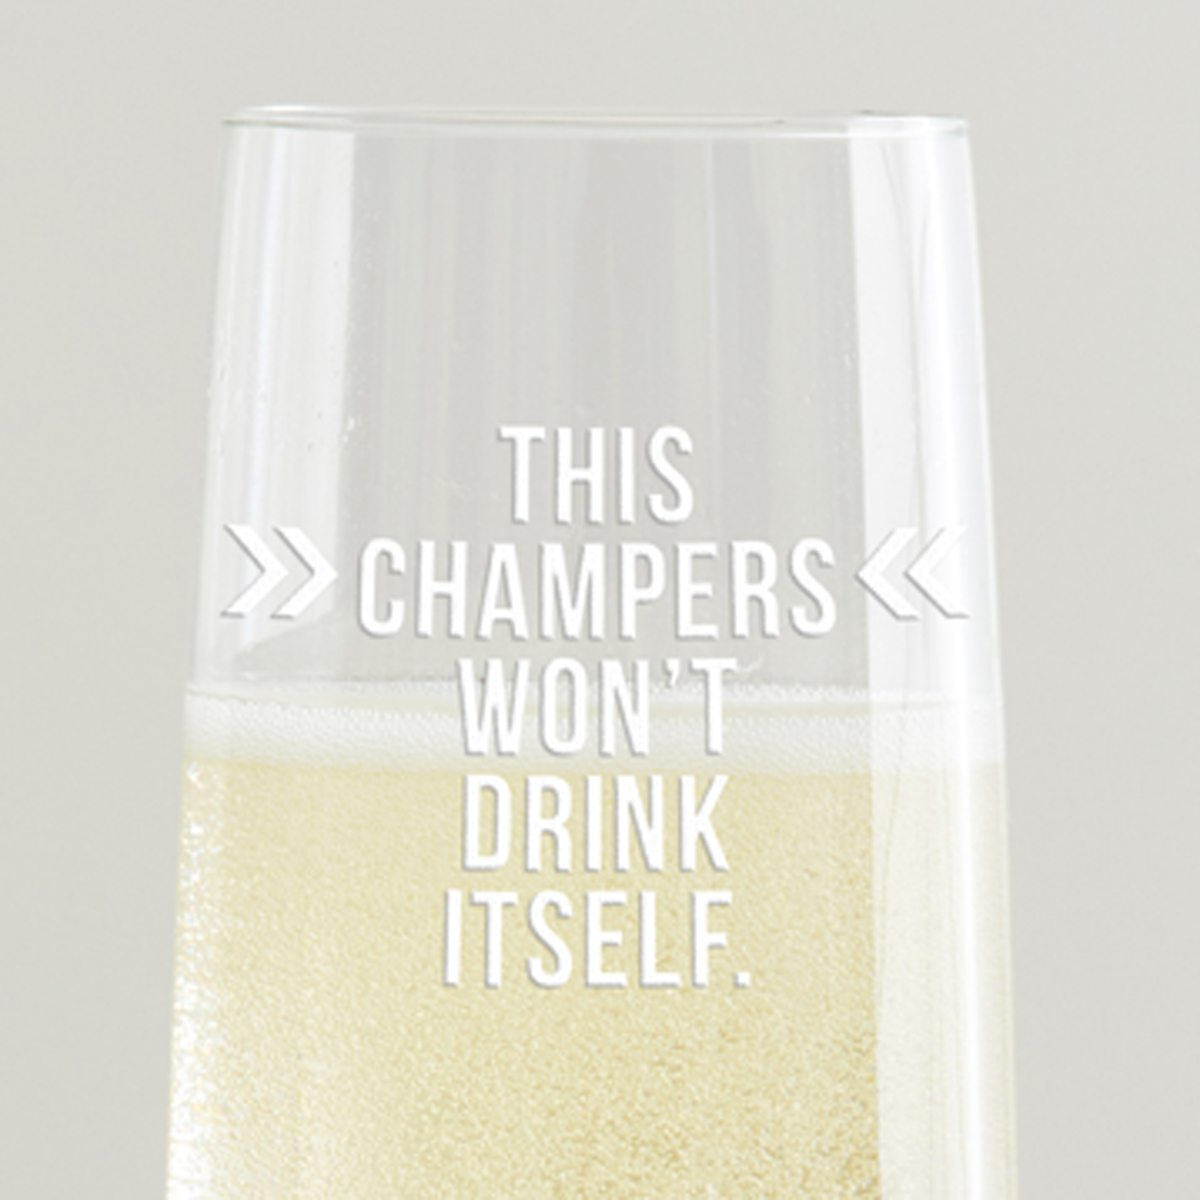 'This Champers Won't Drink Itself' Champagne Flute